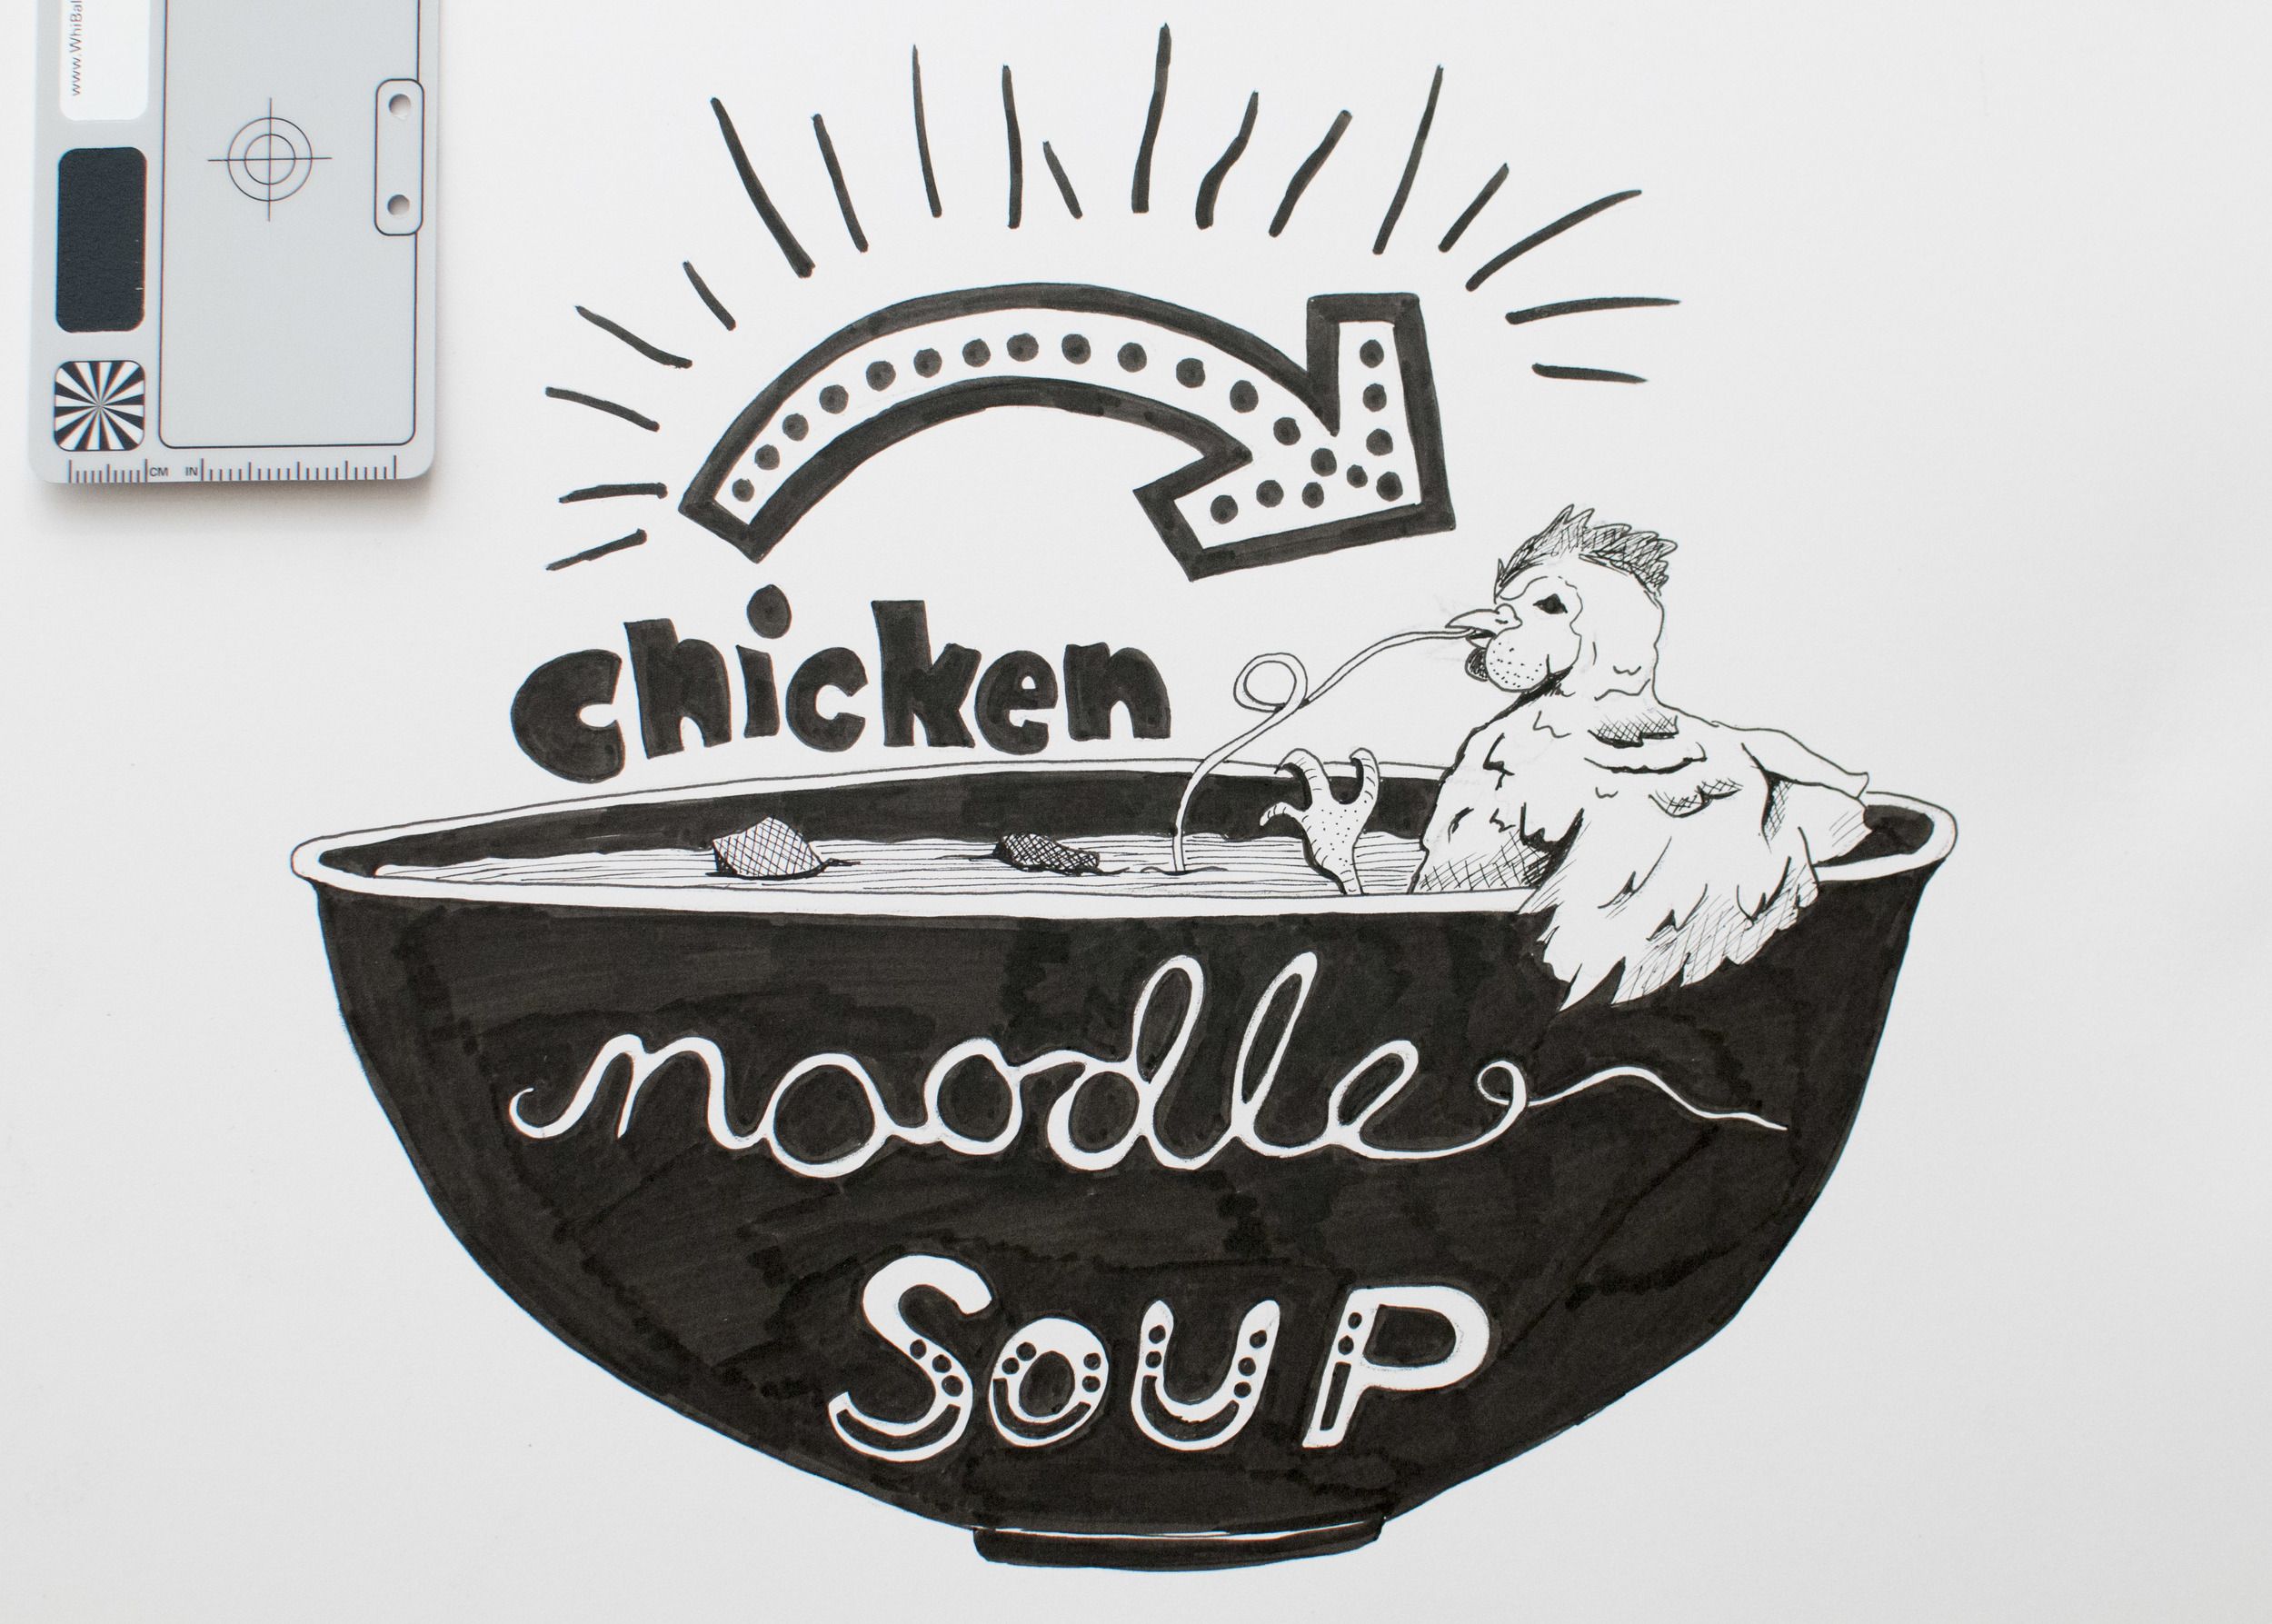 Chicken-soup-picture.jpg